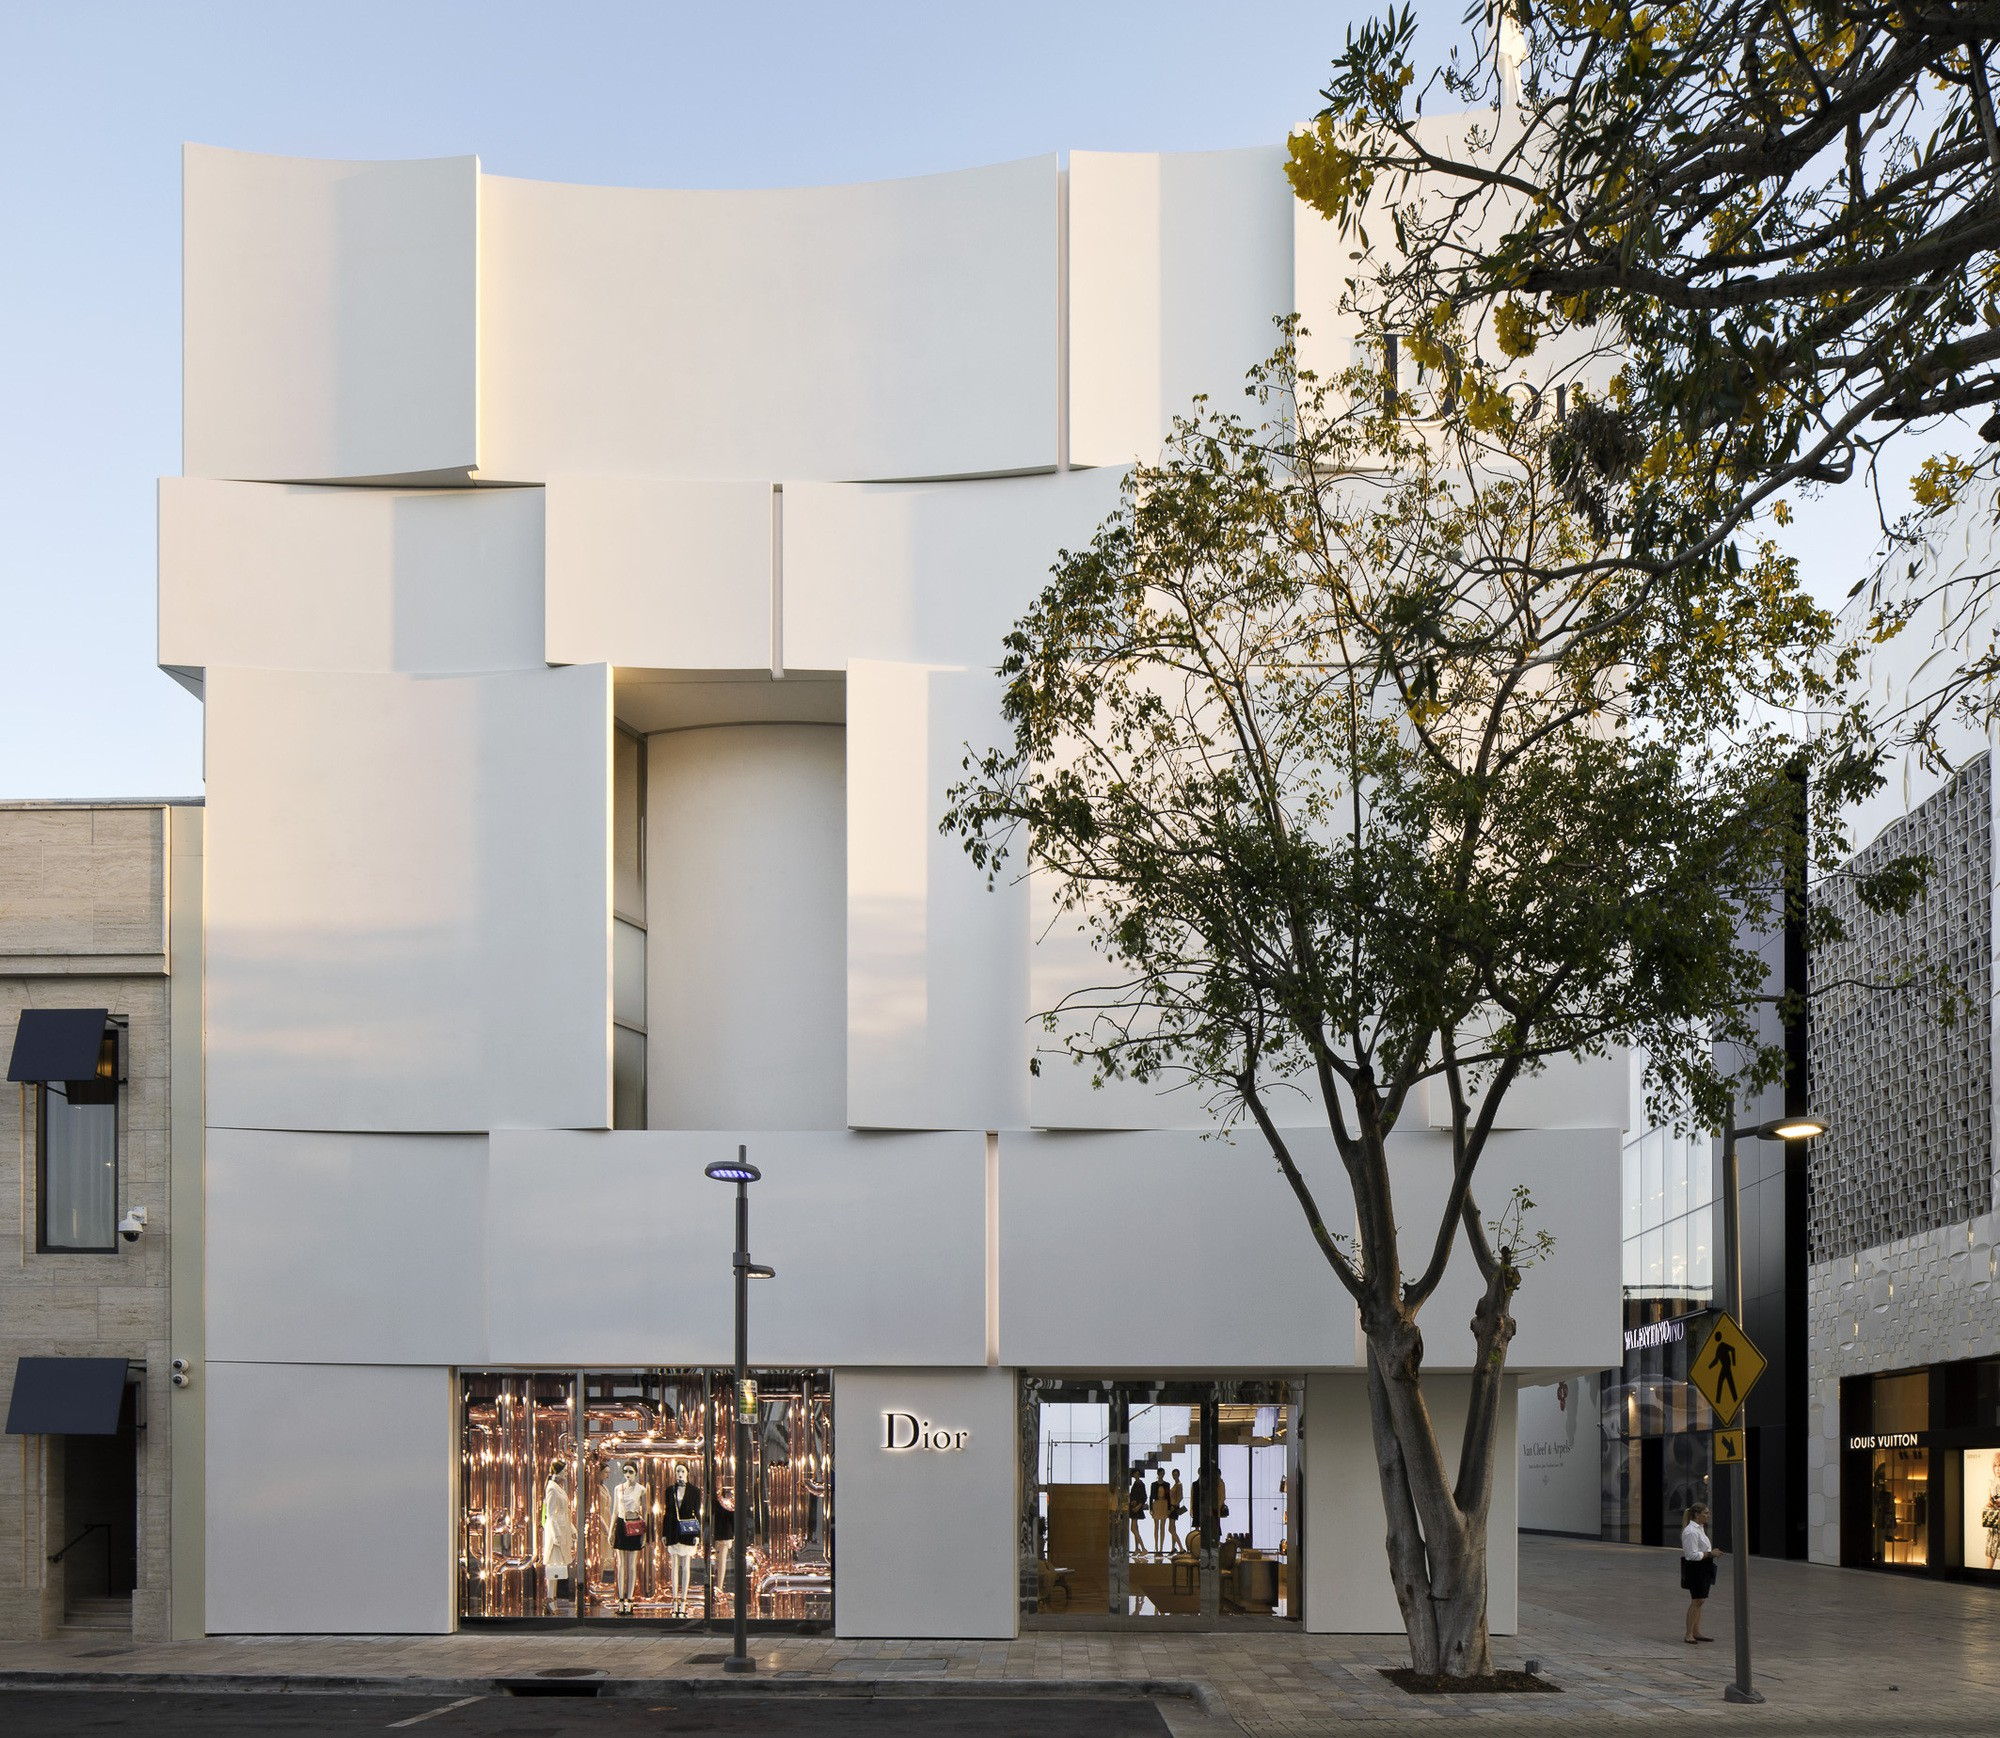 Dior Miami Facade-yesonfashion-com-03